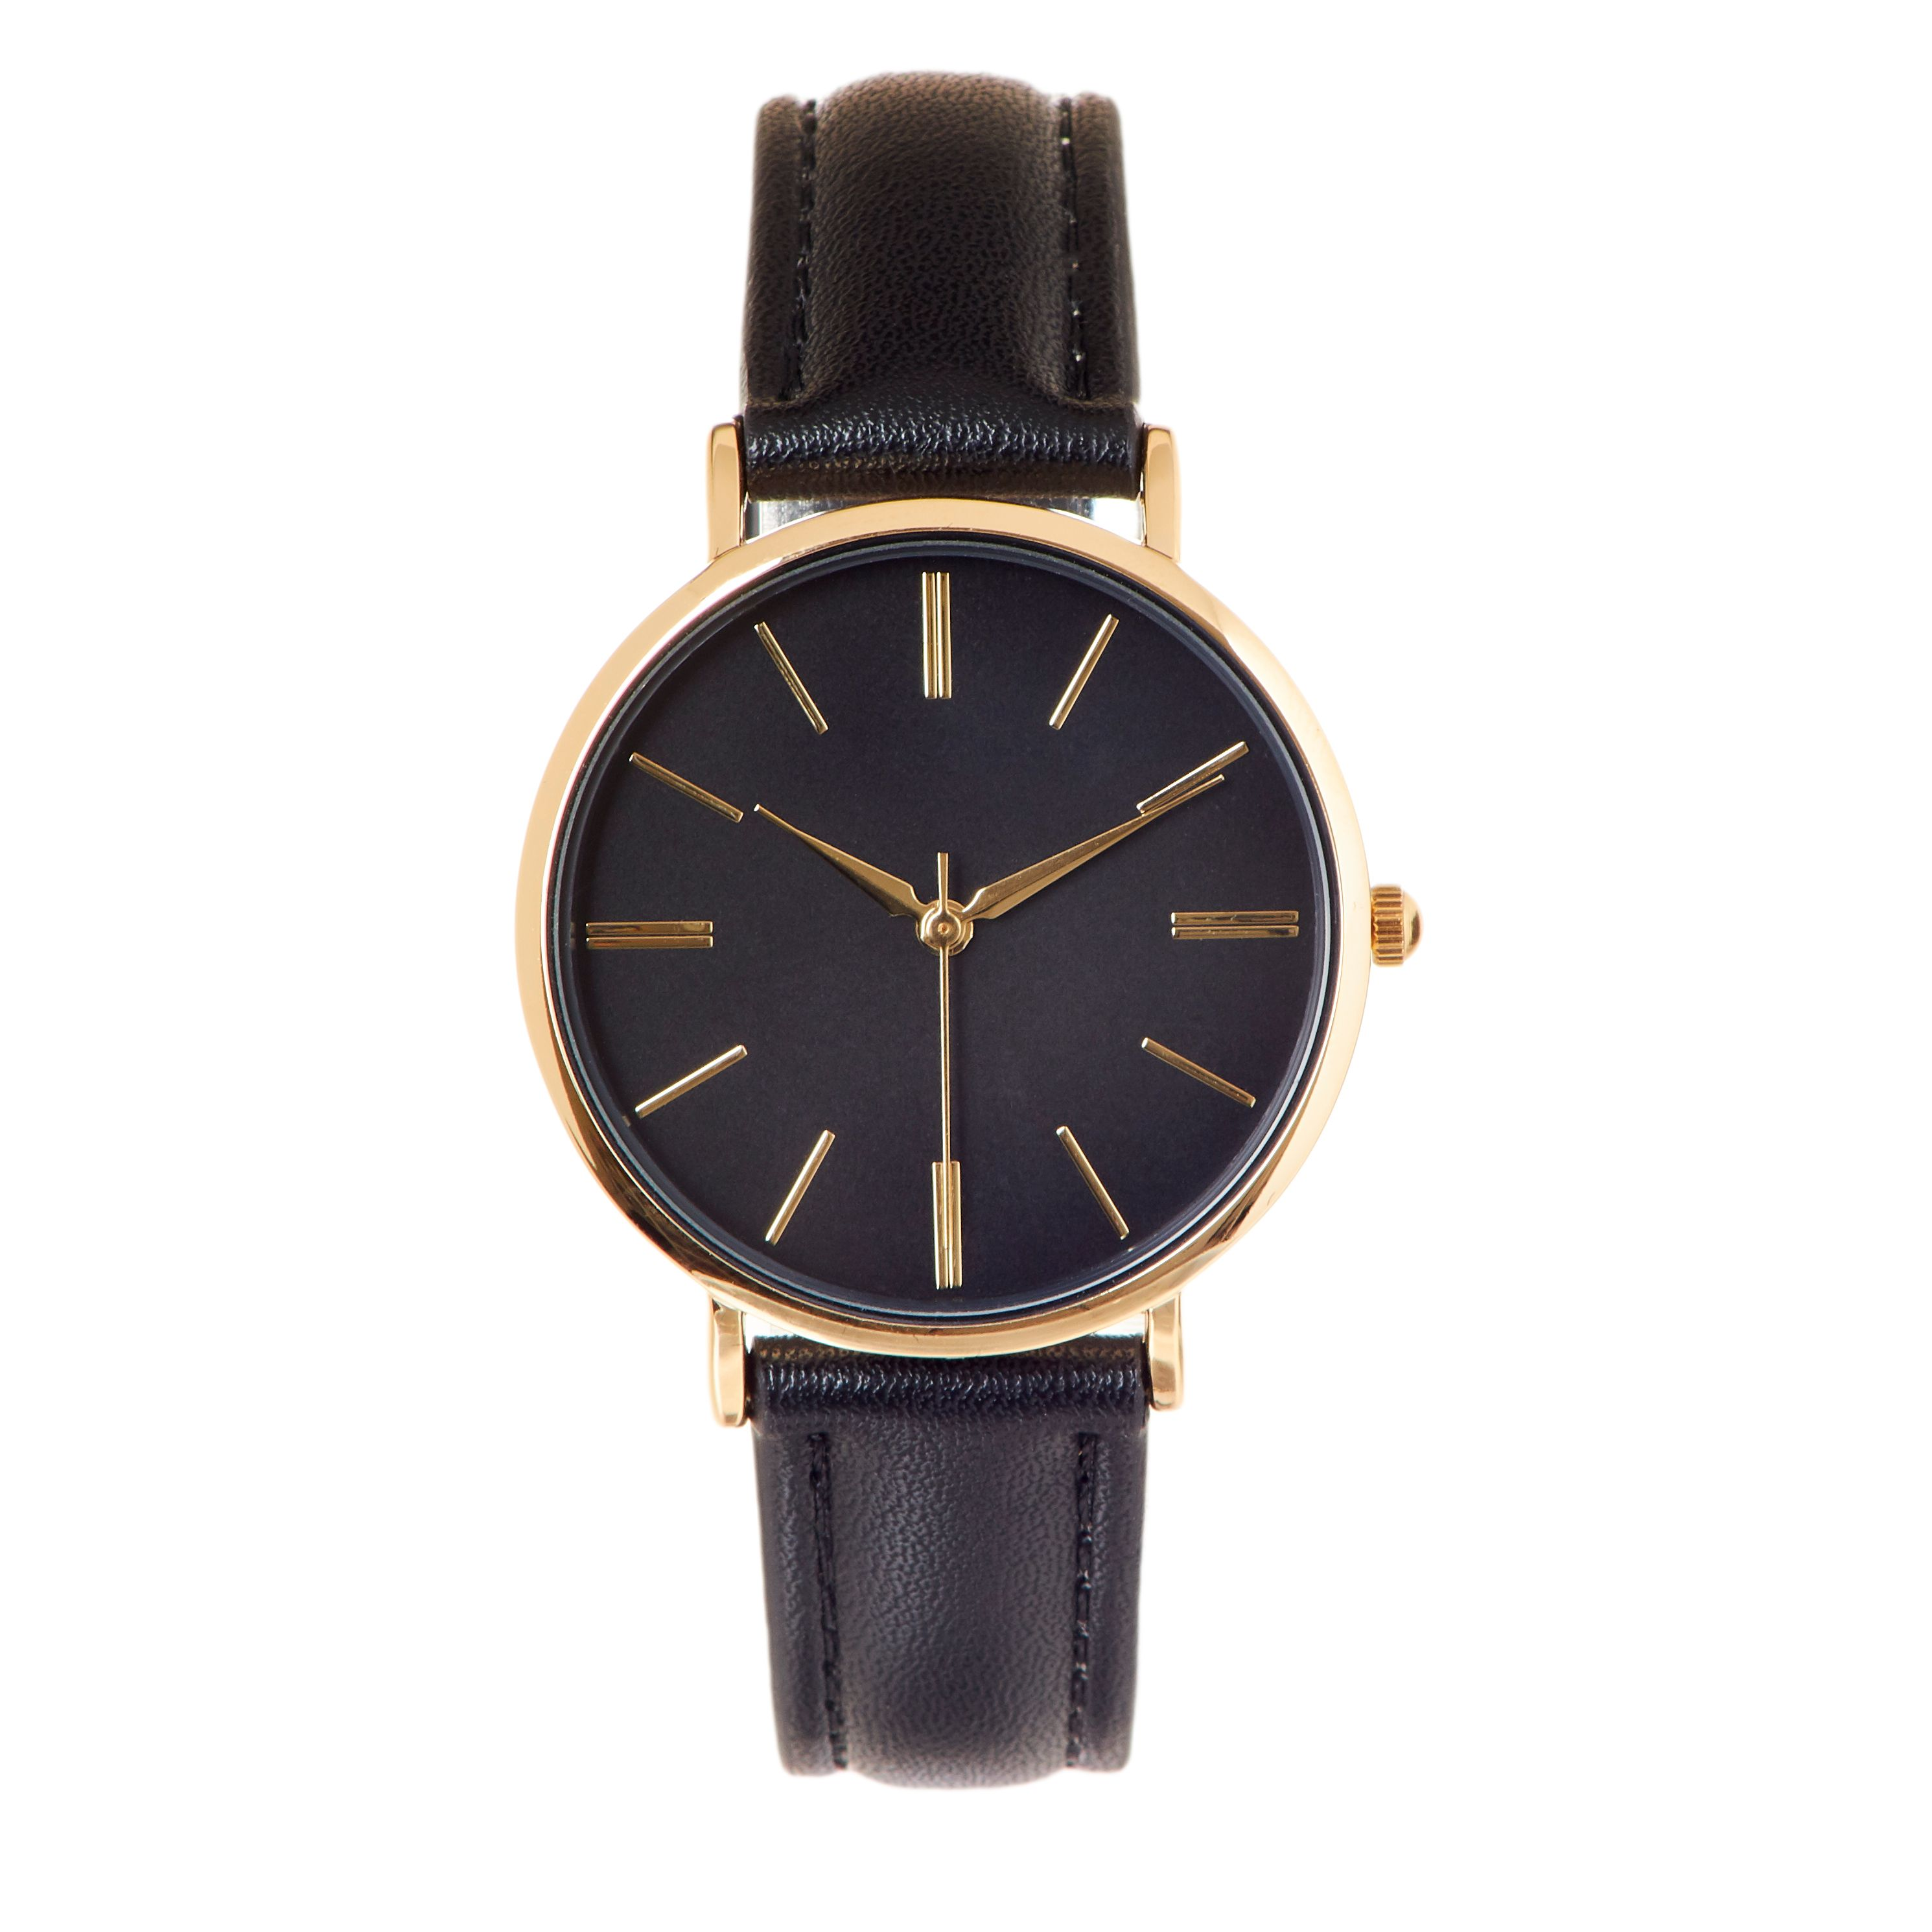 New Women's 30mm Round Dial with Leather Strap Band